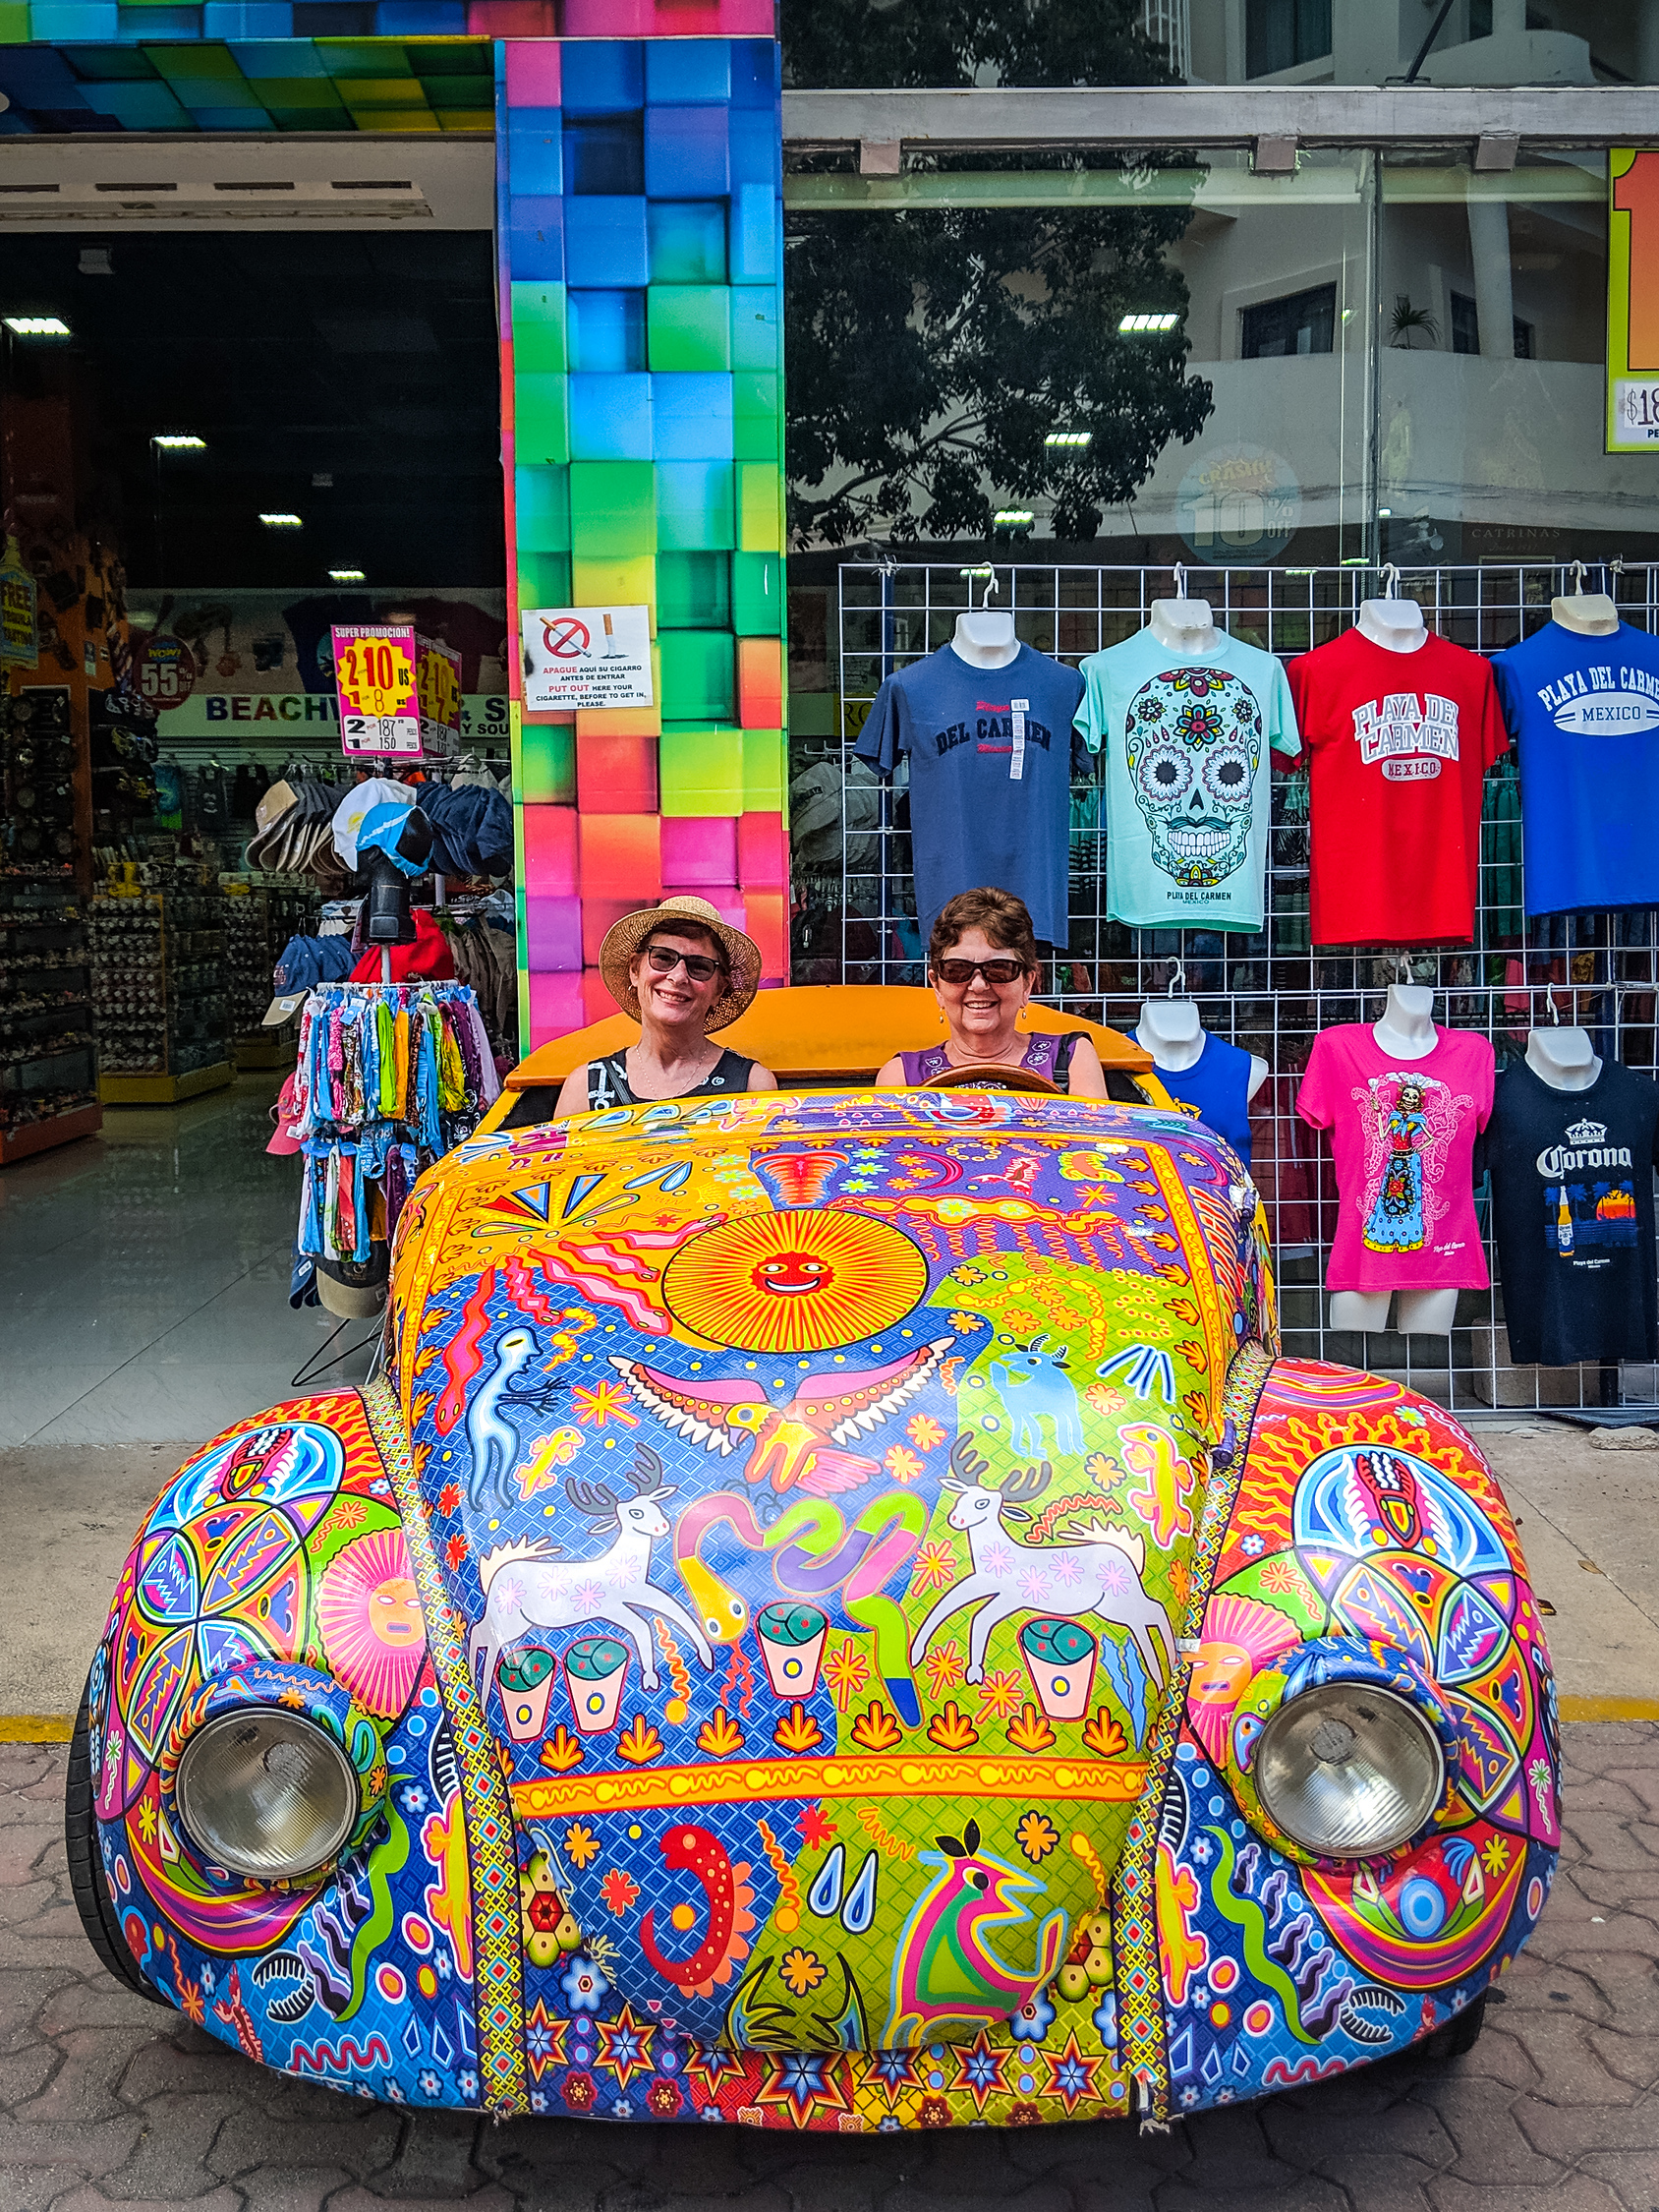 Souvenir shopping in Playa del Carmen Mexico there's a store with a colourful car.